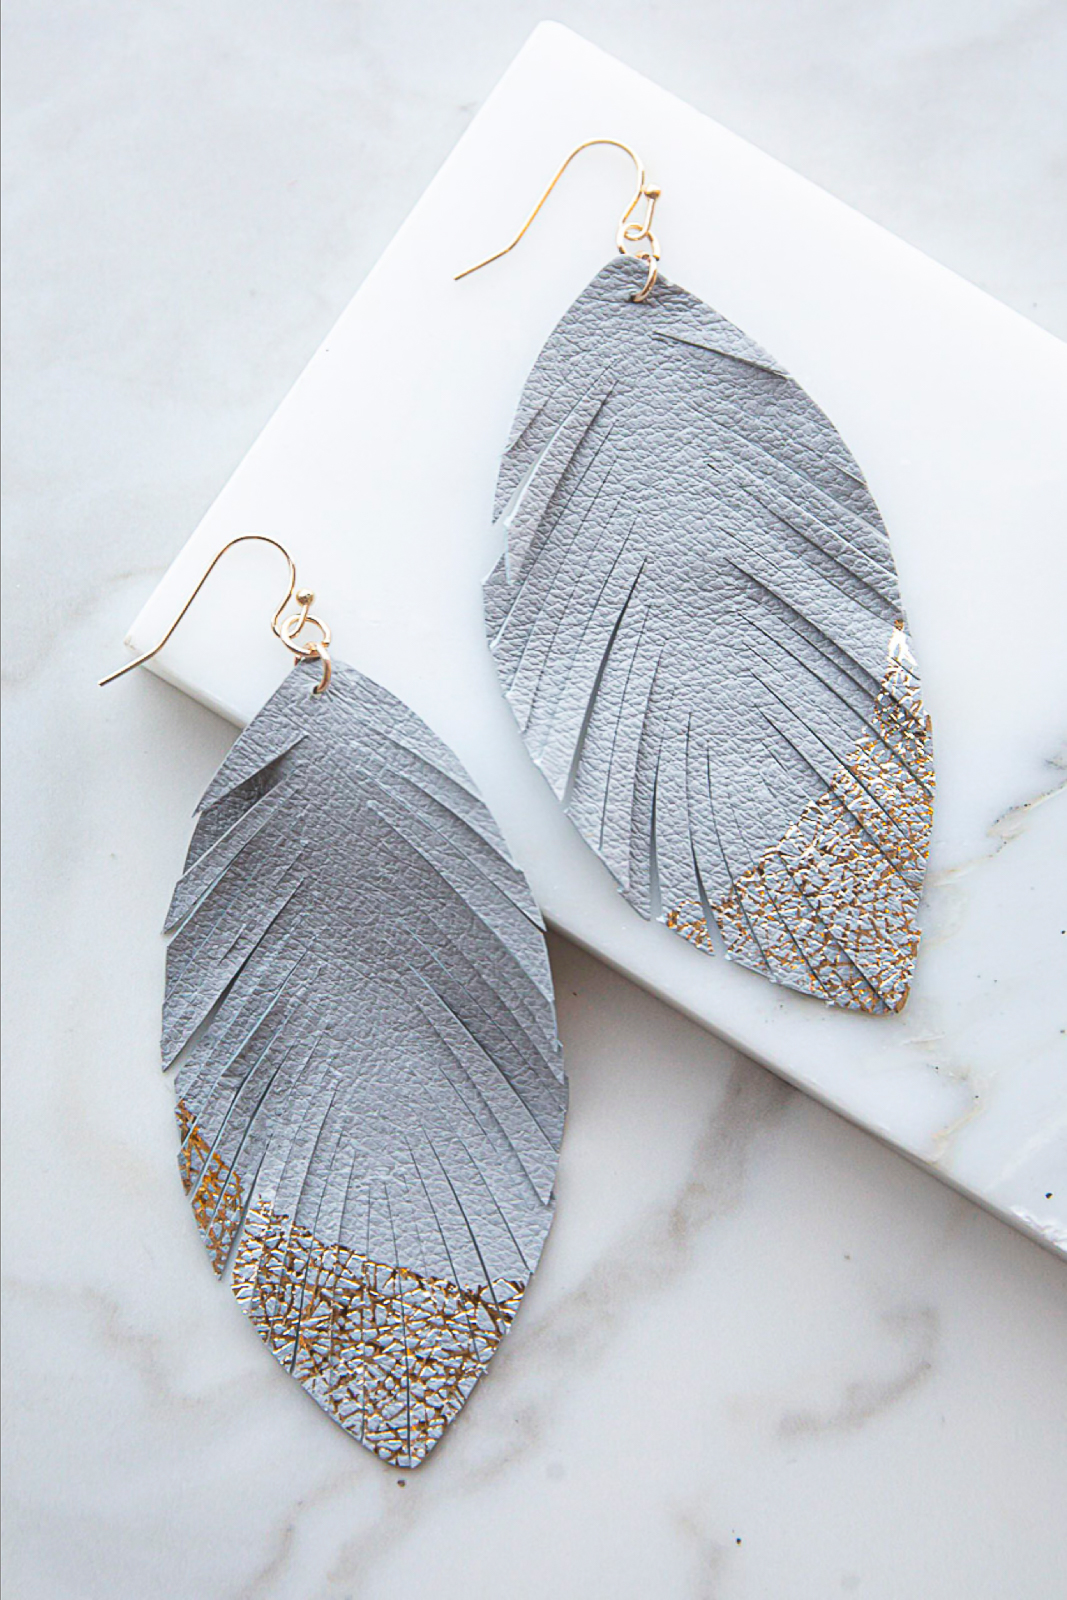 Steel Grey Feather Shaped Earrings with Gold Shimmer Details